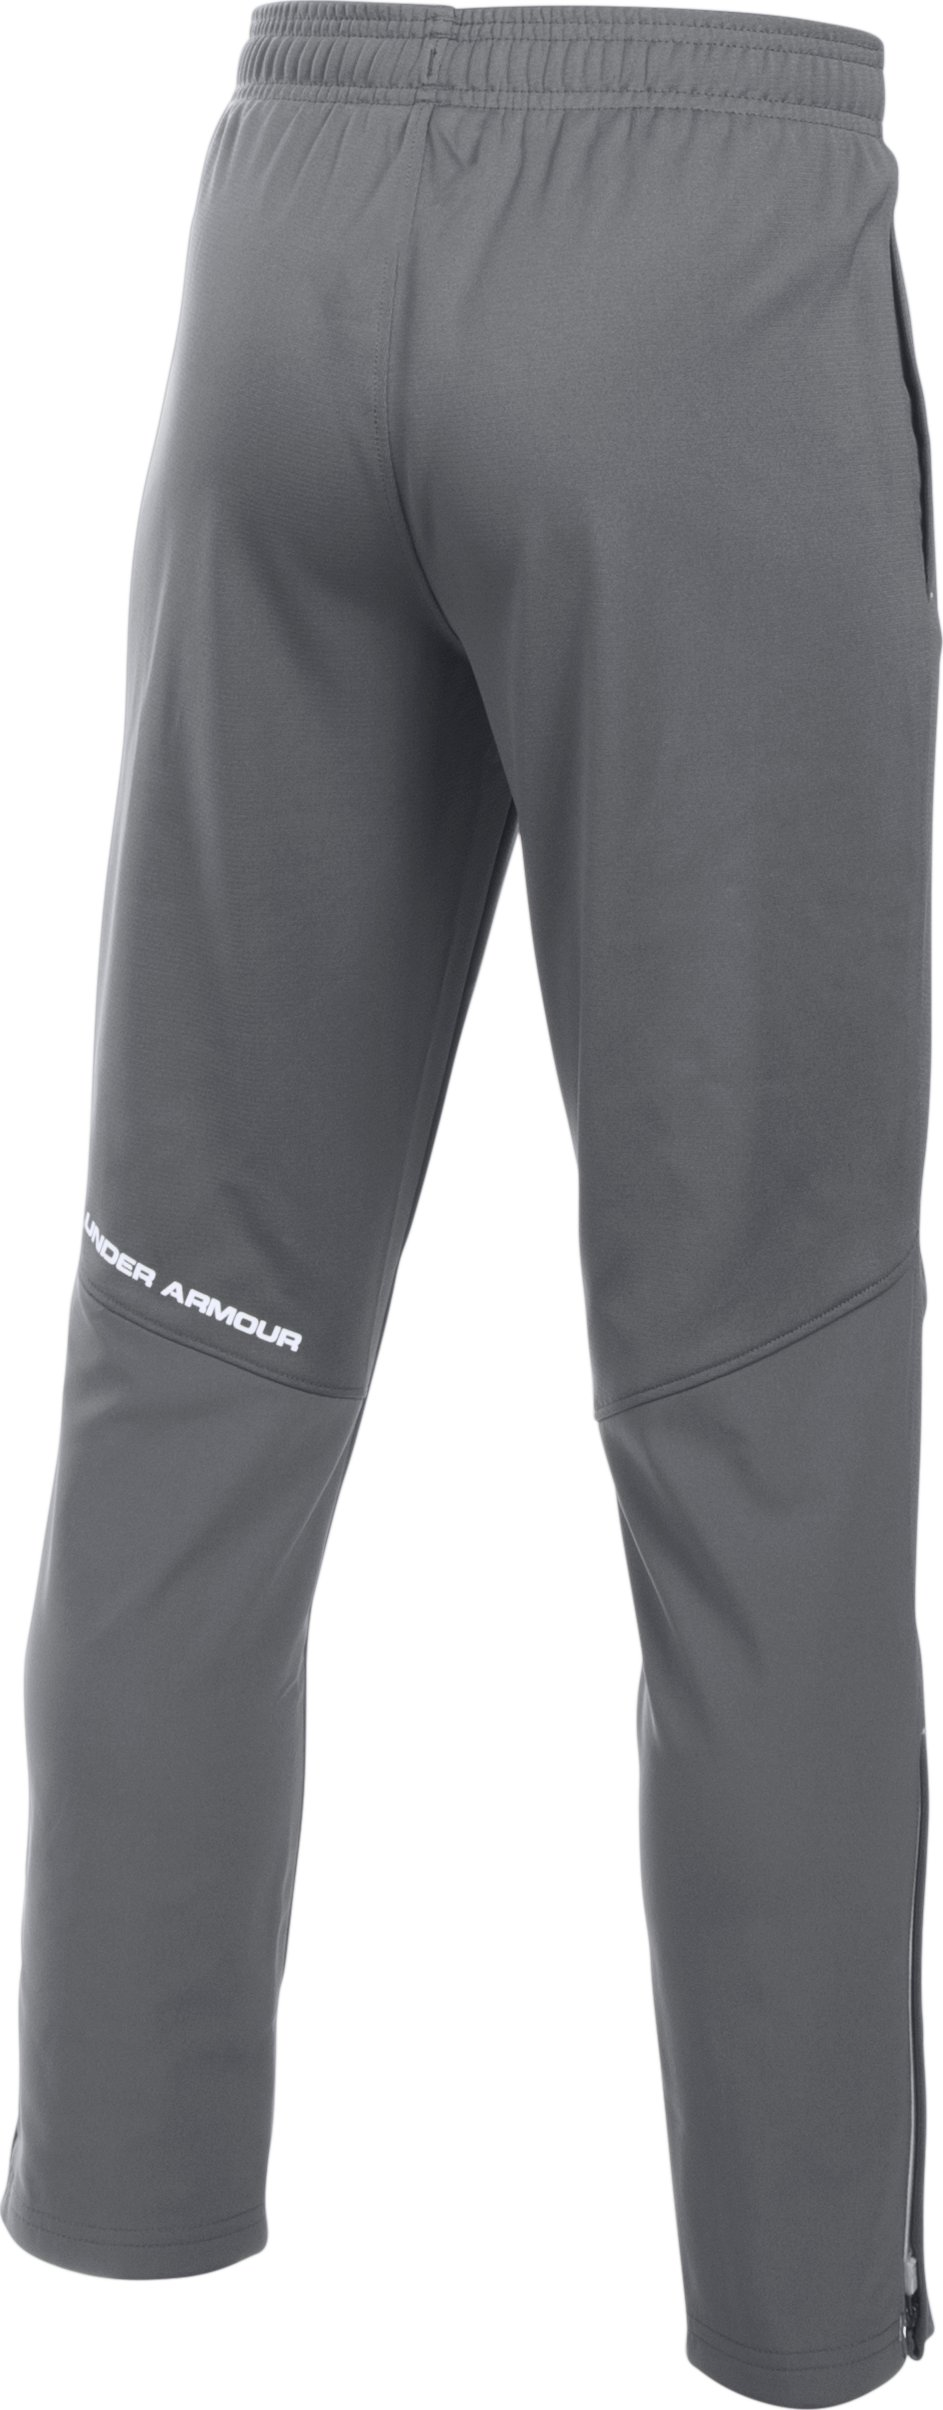 Boys' UA Challenger Knit Pants, Graphite, undefined